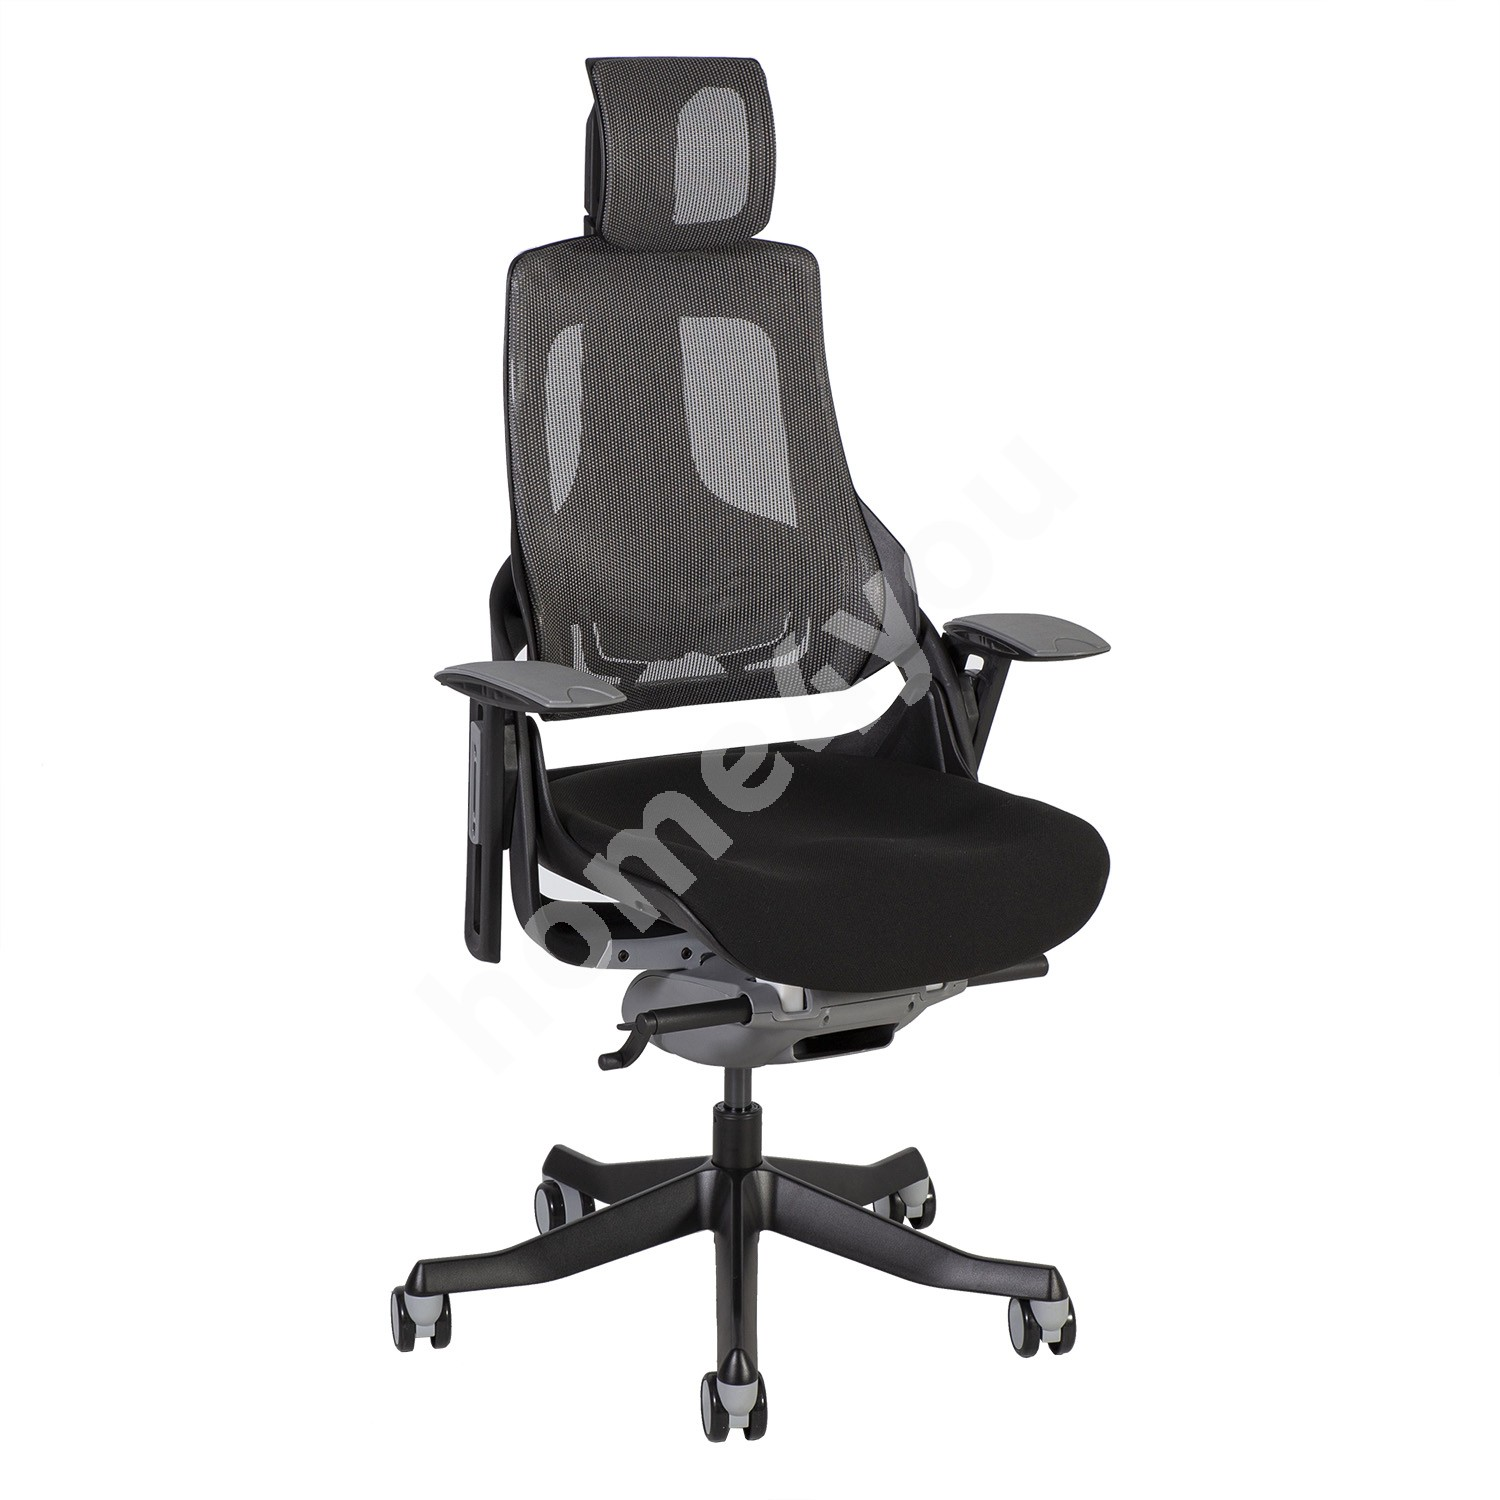 Task chair WAU with headrest 65xD49xH112-129cm, seat: black fabric, backrest: grey mesh fabric, black outer shell